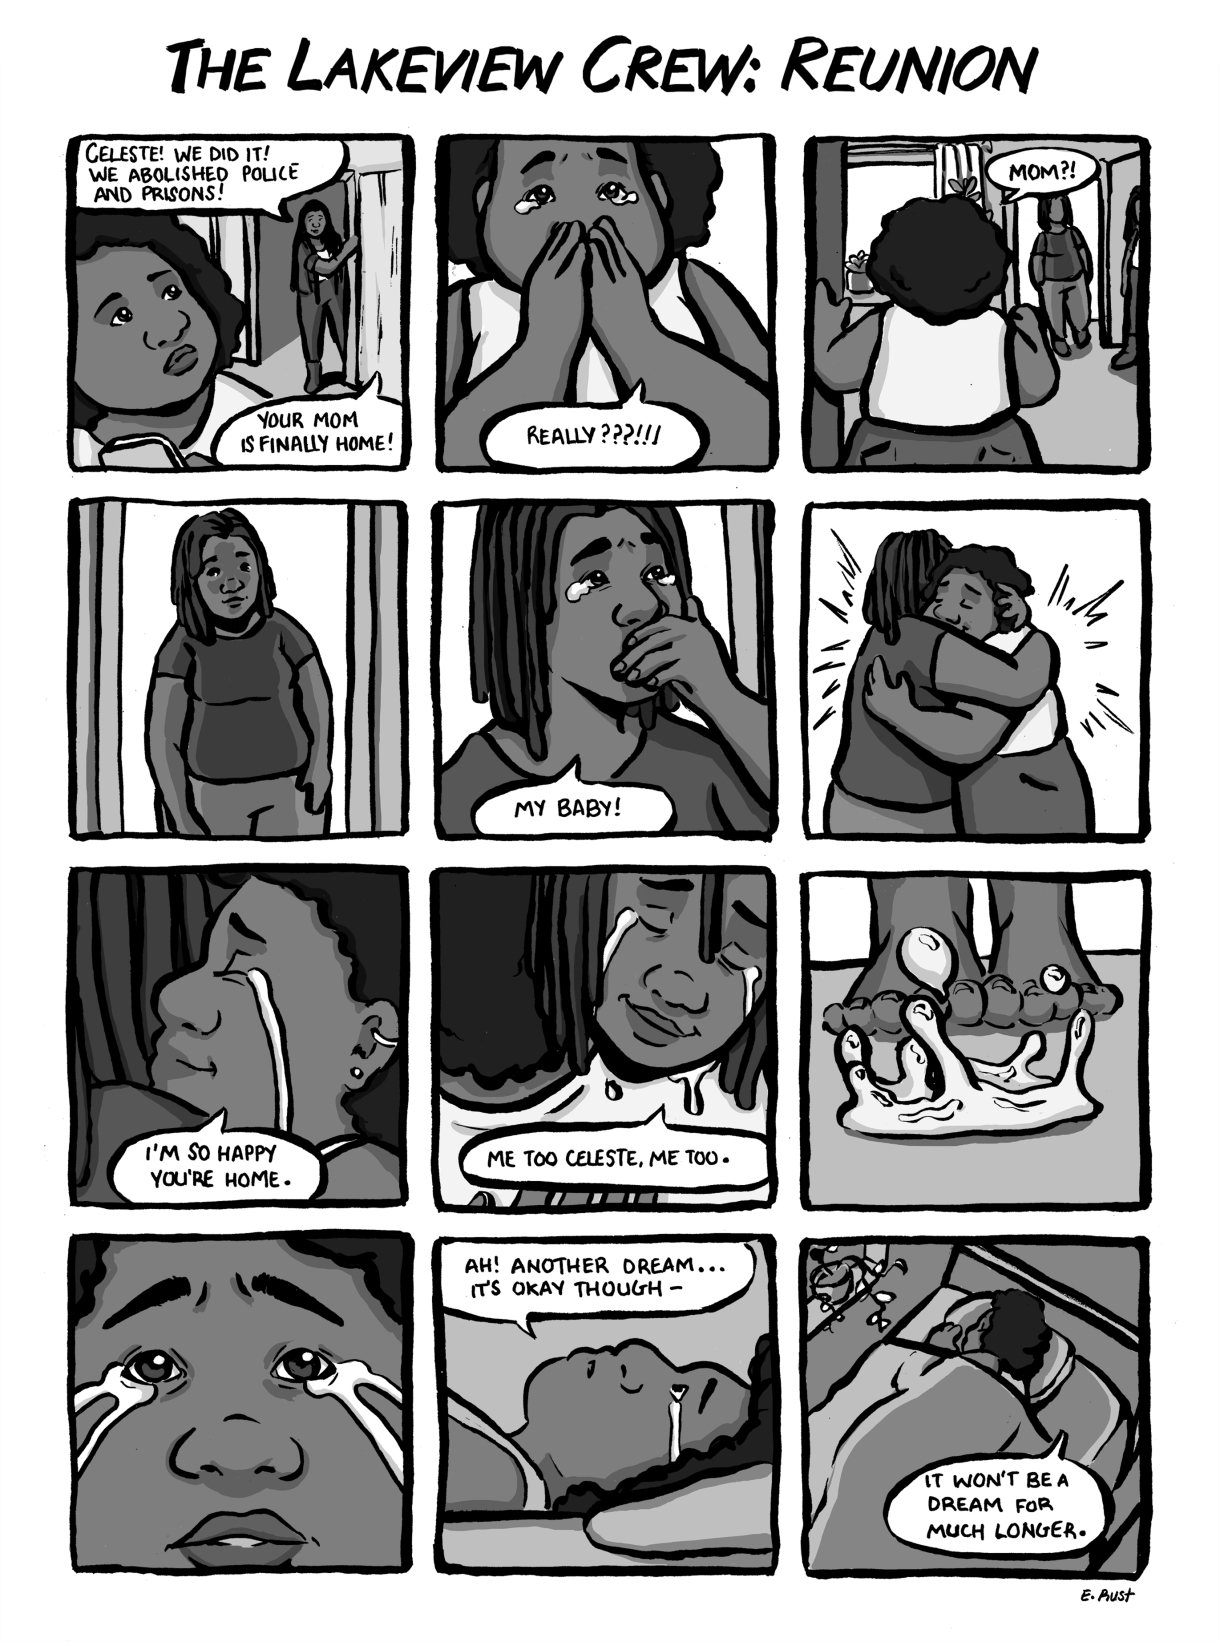 In a 12-panel black and whit comic, a friend comes to the door to tell Celeste that prisons have been abolished and her mom is coming home. Celeste and her mother cry together, hugging, at their reunion. Celeste wakes up from her happy dream — still in tears. But she hugs her pillow and reminds herself that this faraway reality won't be only a dream much longer.